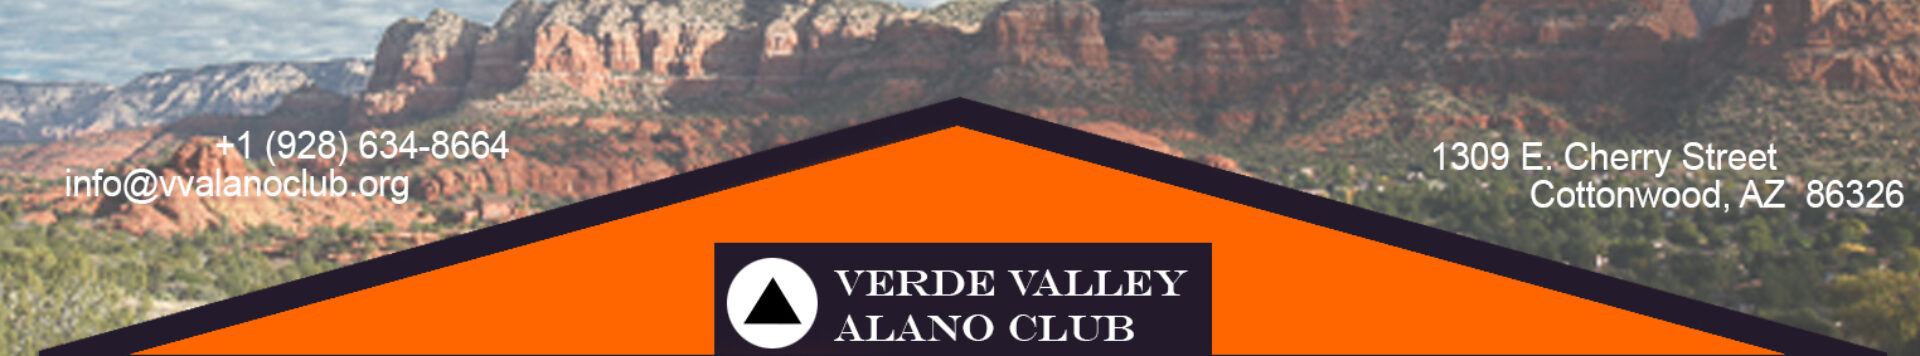 Verde Valley Alano Club